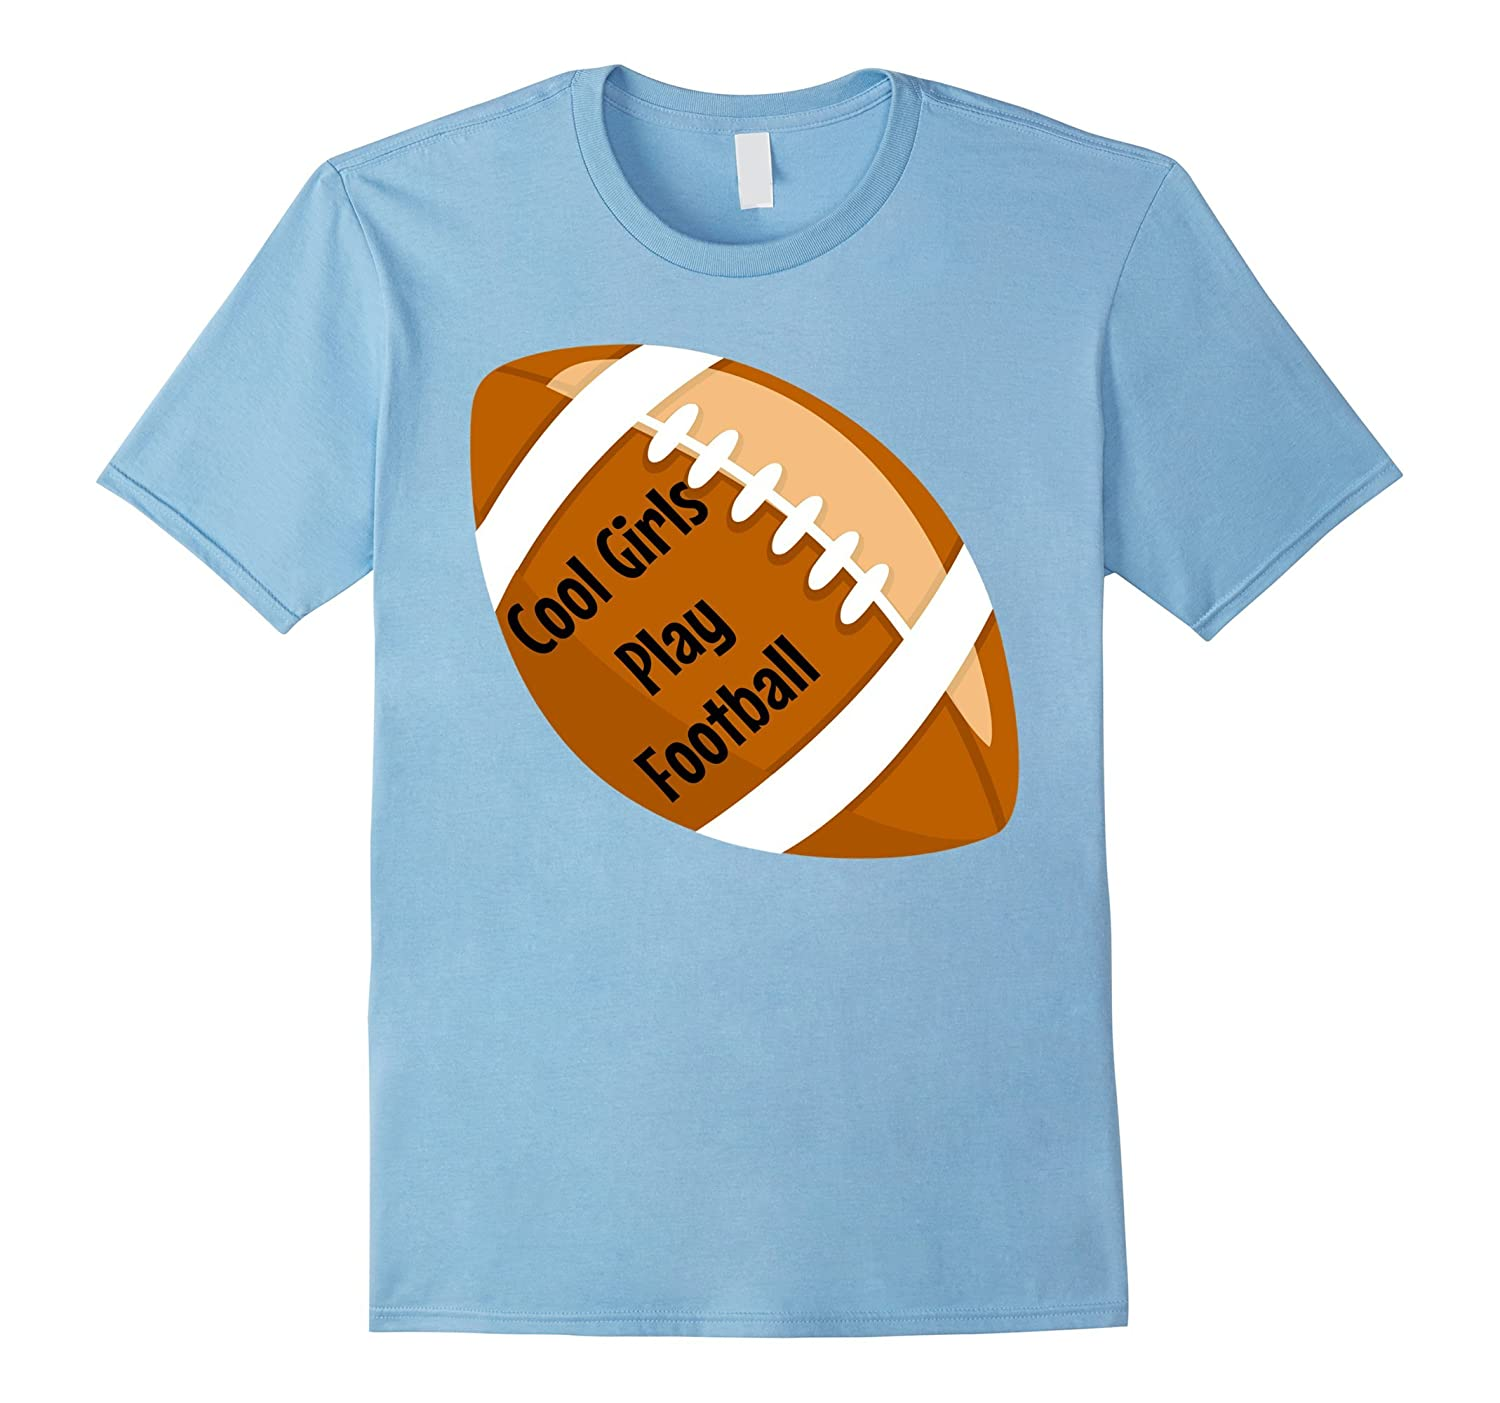 Cool Girls Play Football Funny T Shirt Art Artvinatee